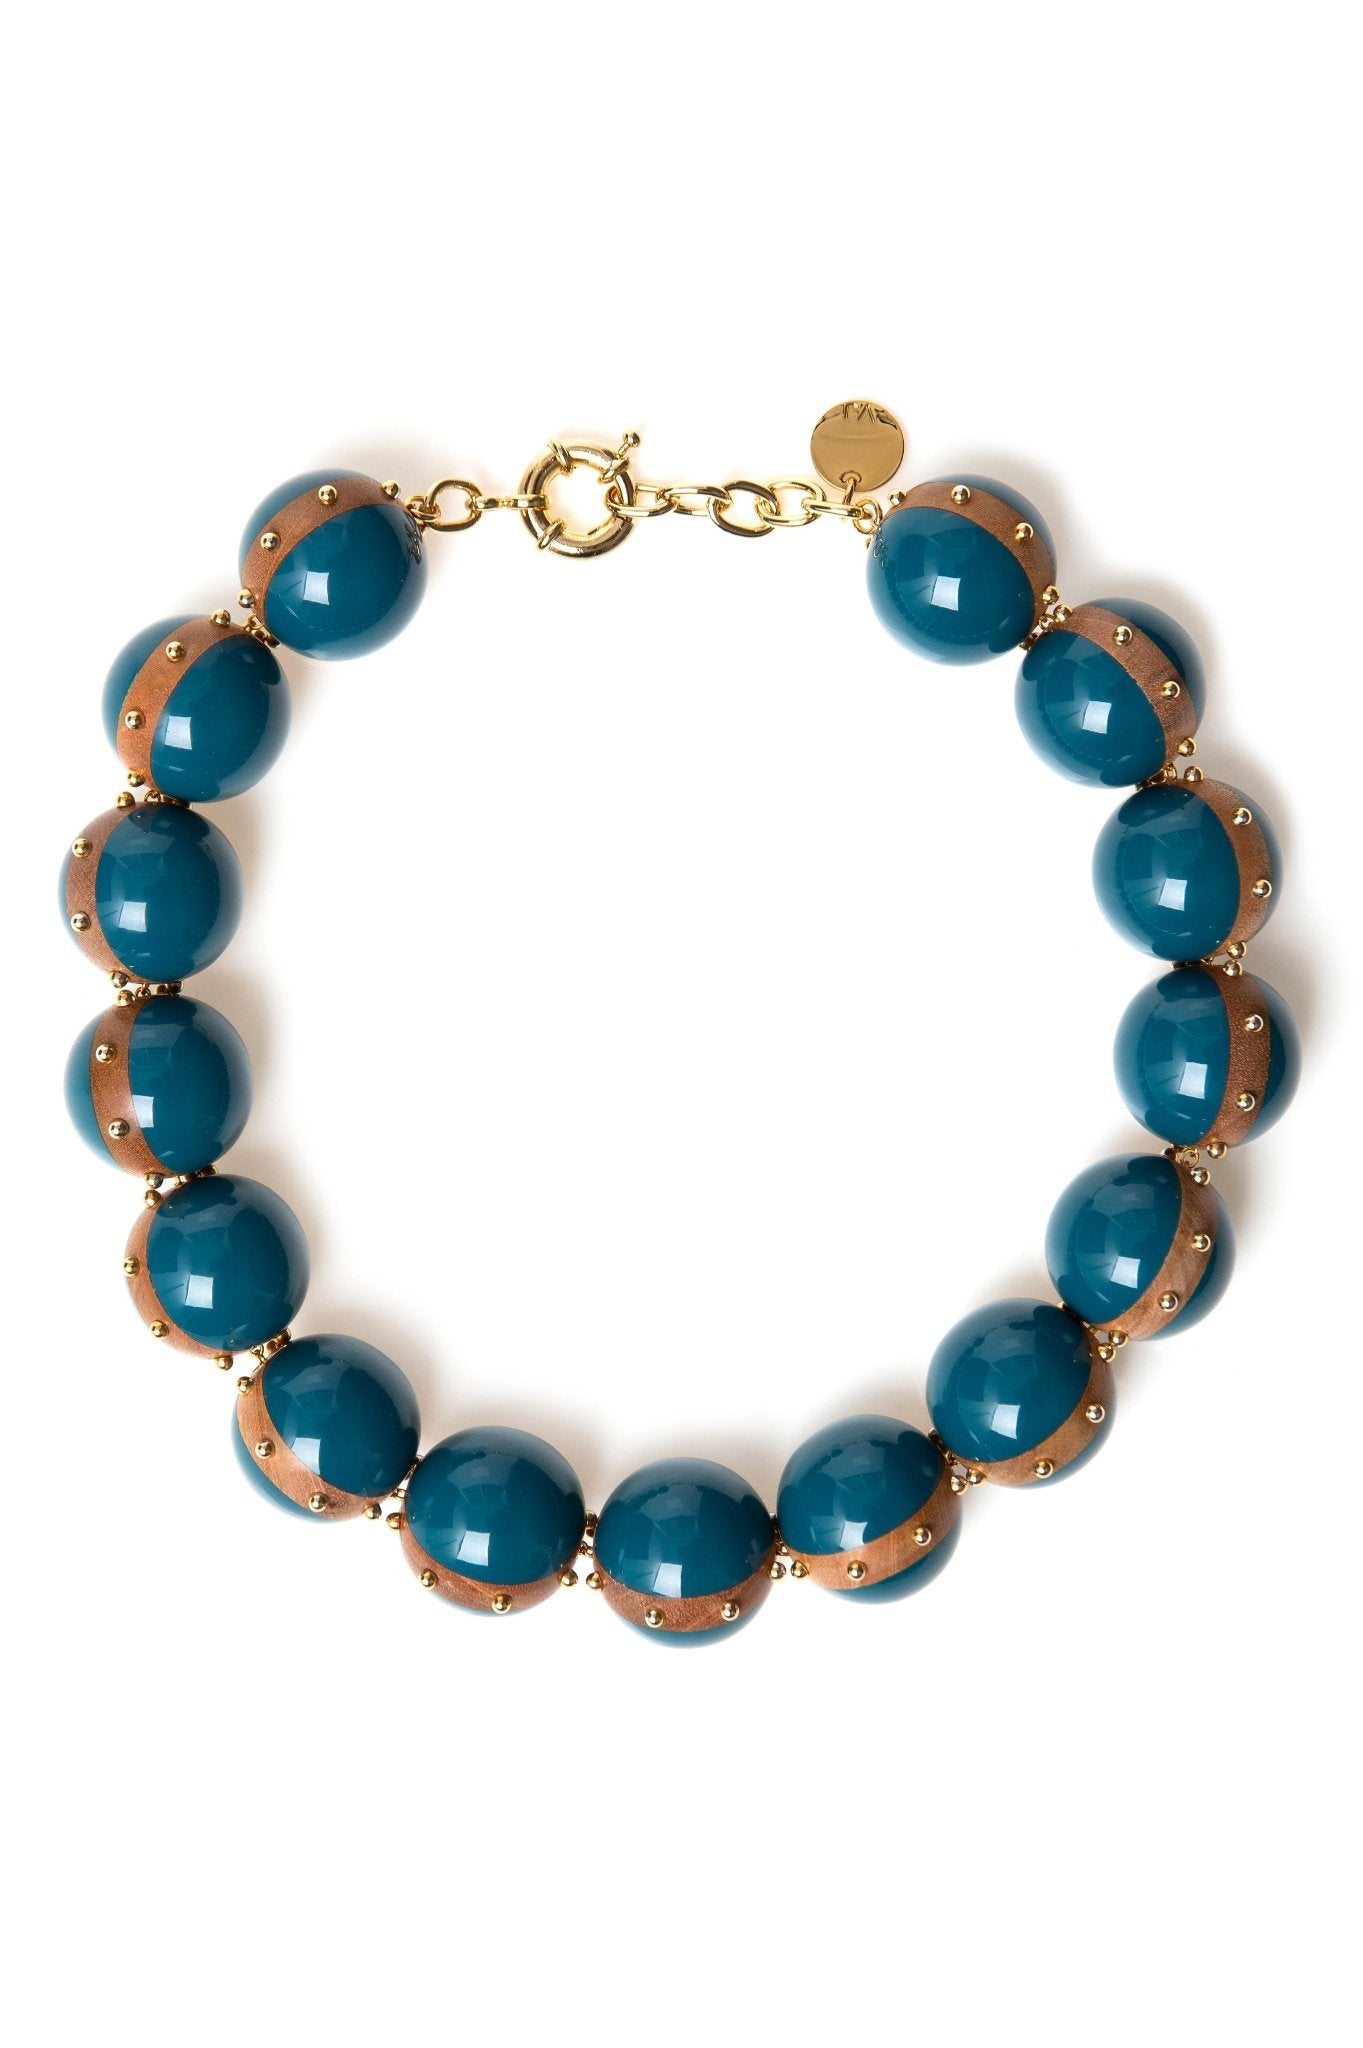 BLUE RESIN BALLS NECKLACE